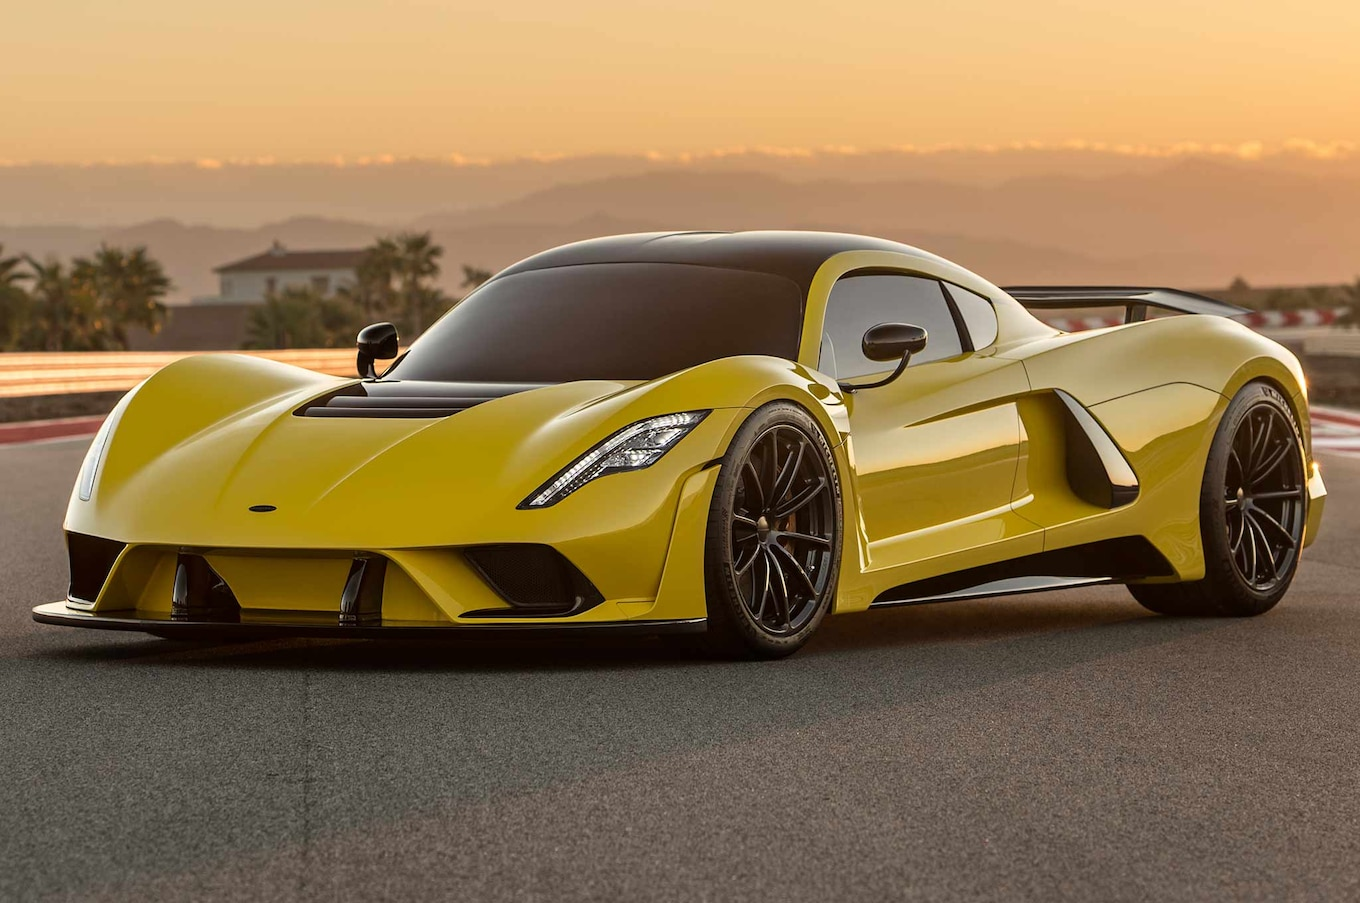 2018 Hennessey Venom F5 1 6 Million Hennessey Venom F5 Debuts With More Than 1 600 Hp